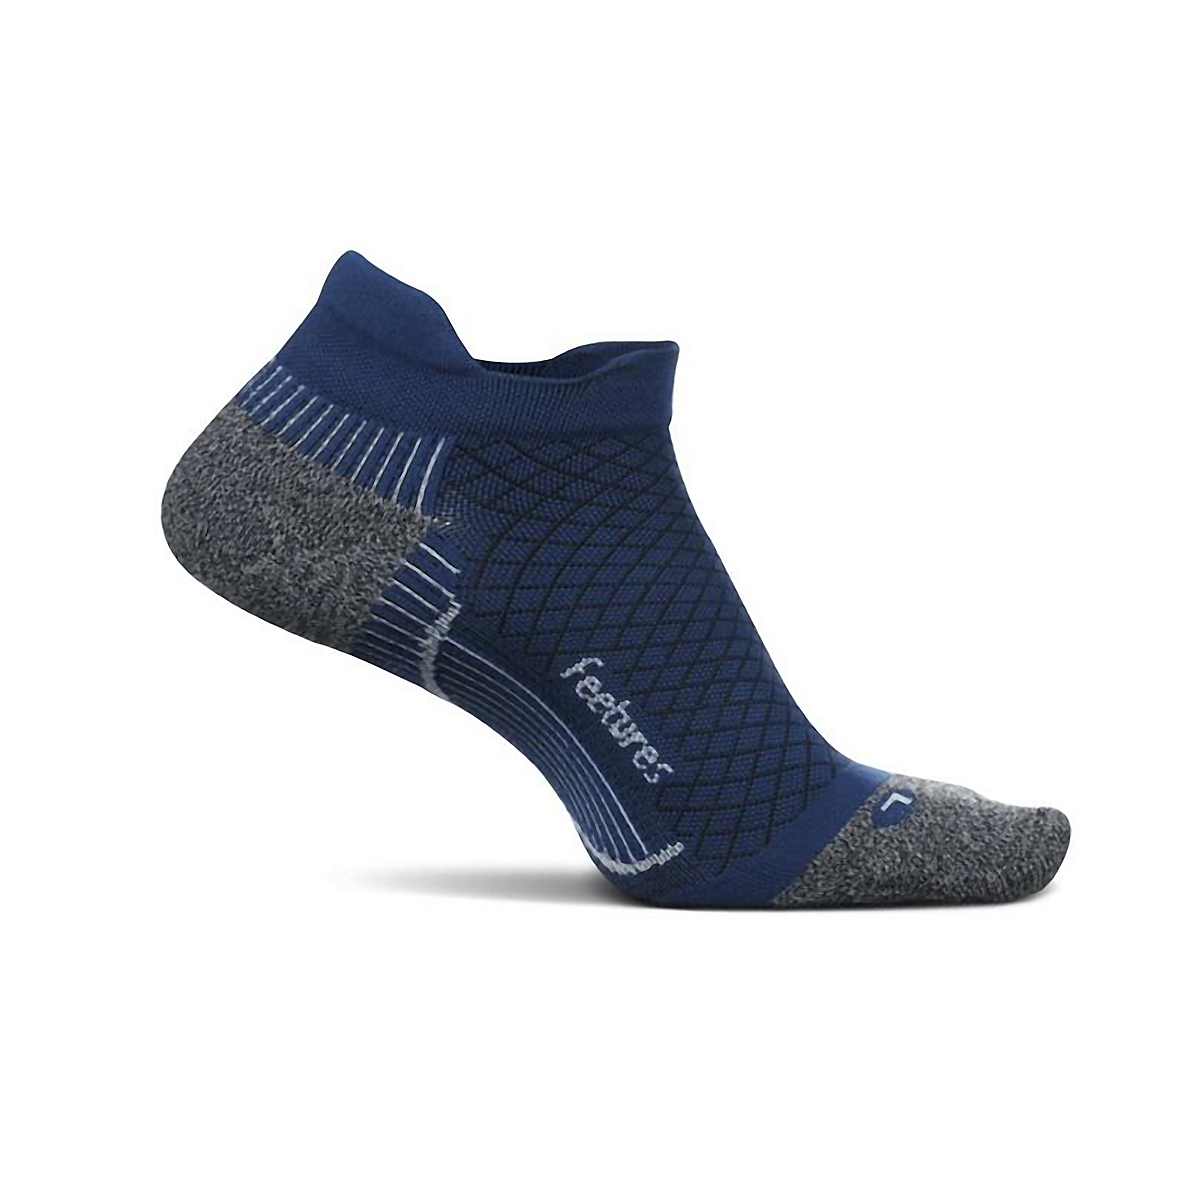 Feetures PF Relief Cushion No Show Tab Socks - Color: Oceanic - Size: M, Oceanic, large, image 1